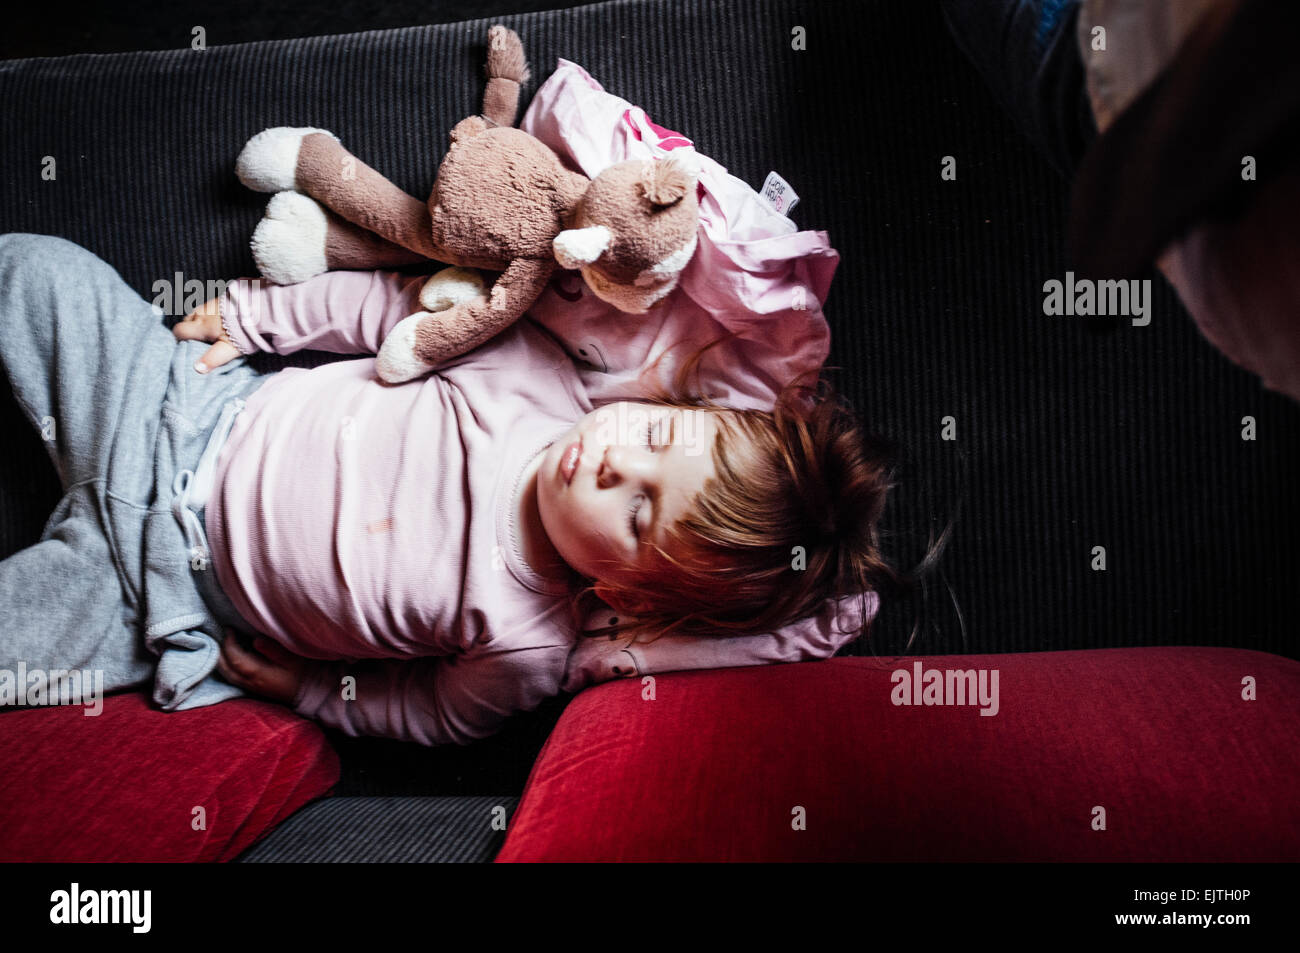 High angle view of baby sleeping in train Photo Stock